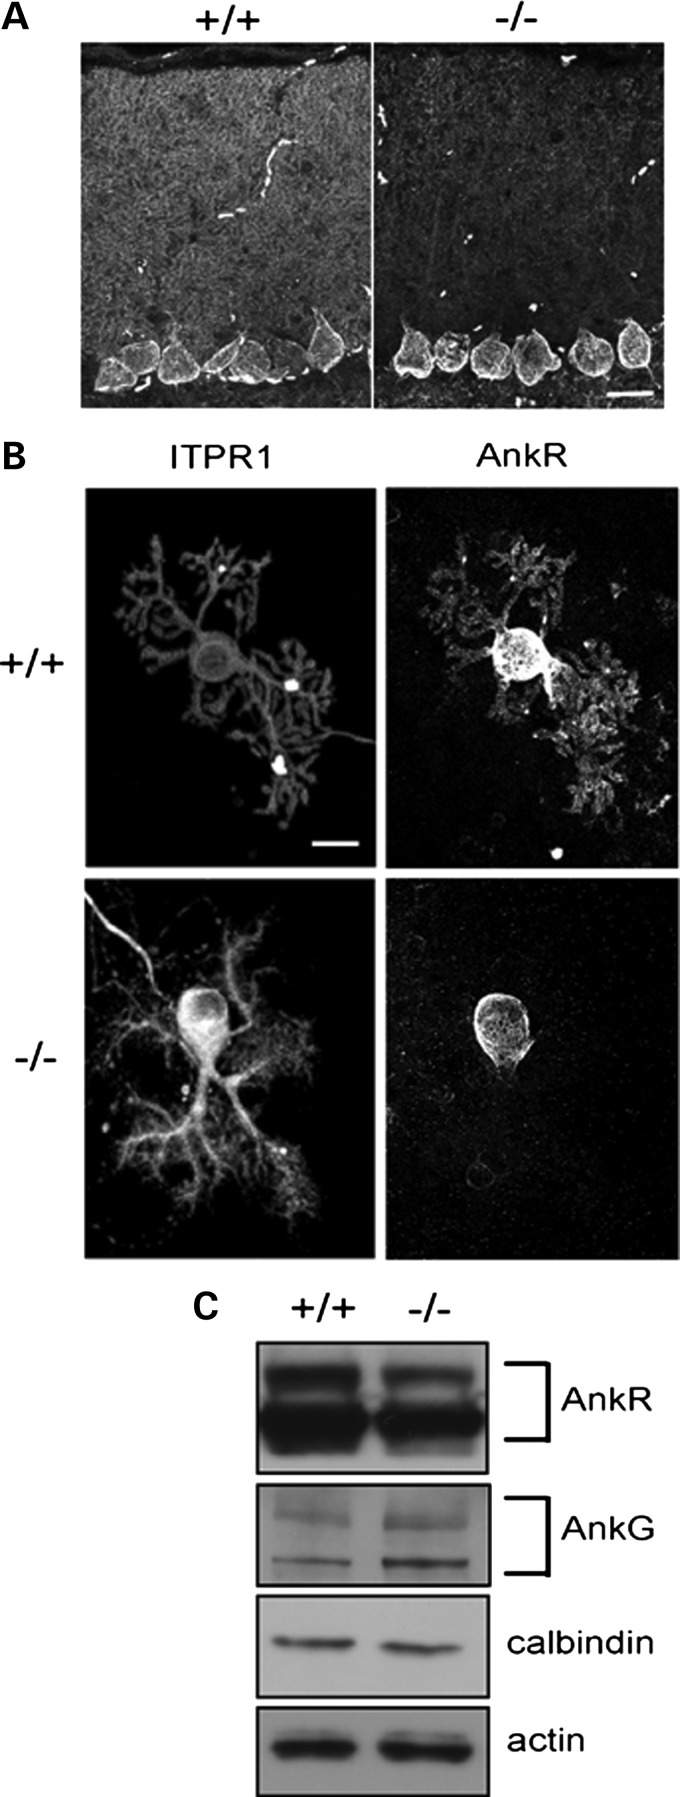 Loss of ankyrin R in β-III spectrin-deficient mice. ( A ) Sagittal cerebellar sections from 6-week-old WT (+/+) and β-III −/− (−/−) mice immunostained for ankyrin R. ( B ) Dissociated Purkinje cell cultures from WT (+/+) and β-III −/− (−/−) mice 14 DIV immunostained for ITPR1 and ankyrin R. ( C ) Immunoblot analysis of cerebellar homogenates from 6-week-old WT (+/+) and β-III −/− (−/−) mice probed for ankyrin R, ankyrin G, calbindin and actin. All images are representative of at least three independent experiments. Scale bar, 20 μm.